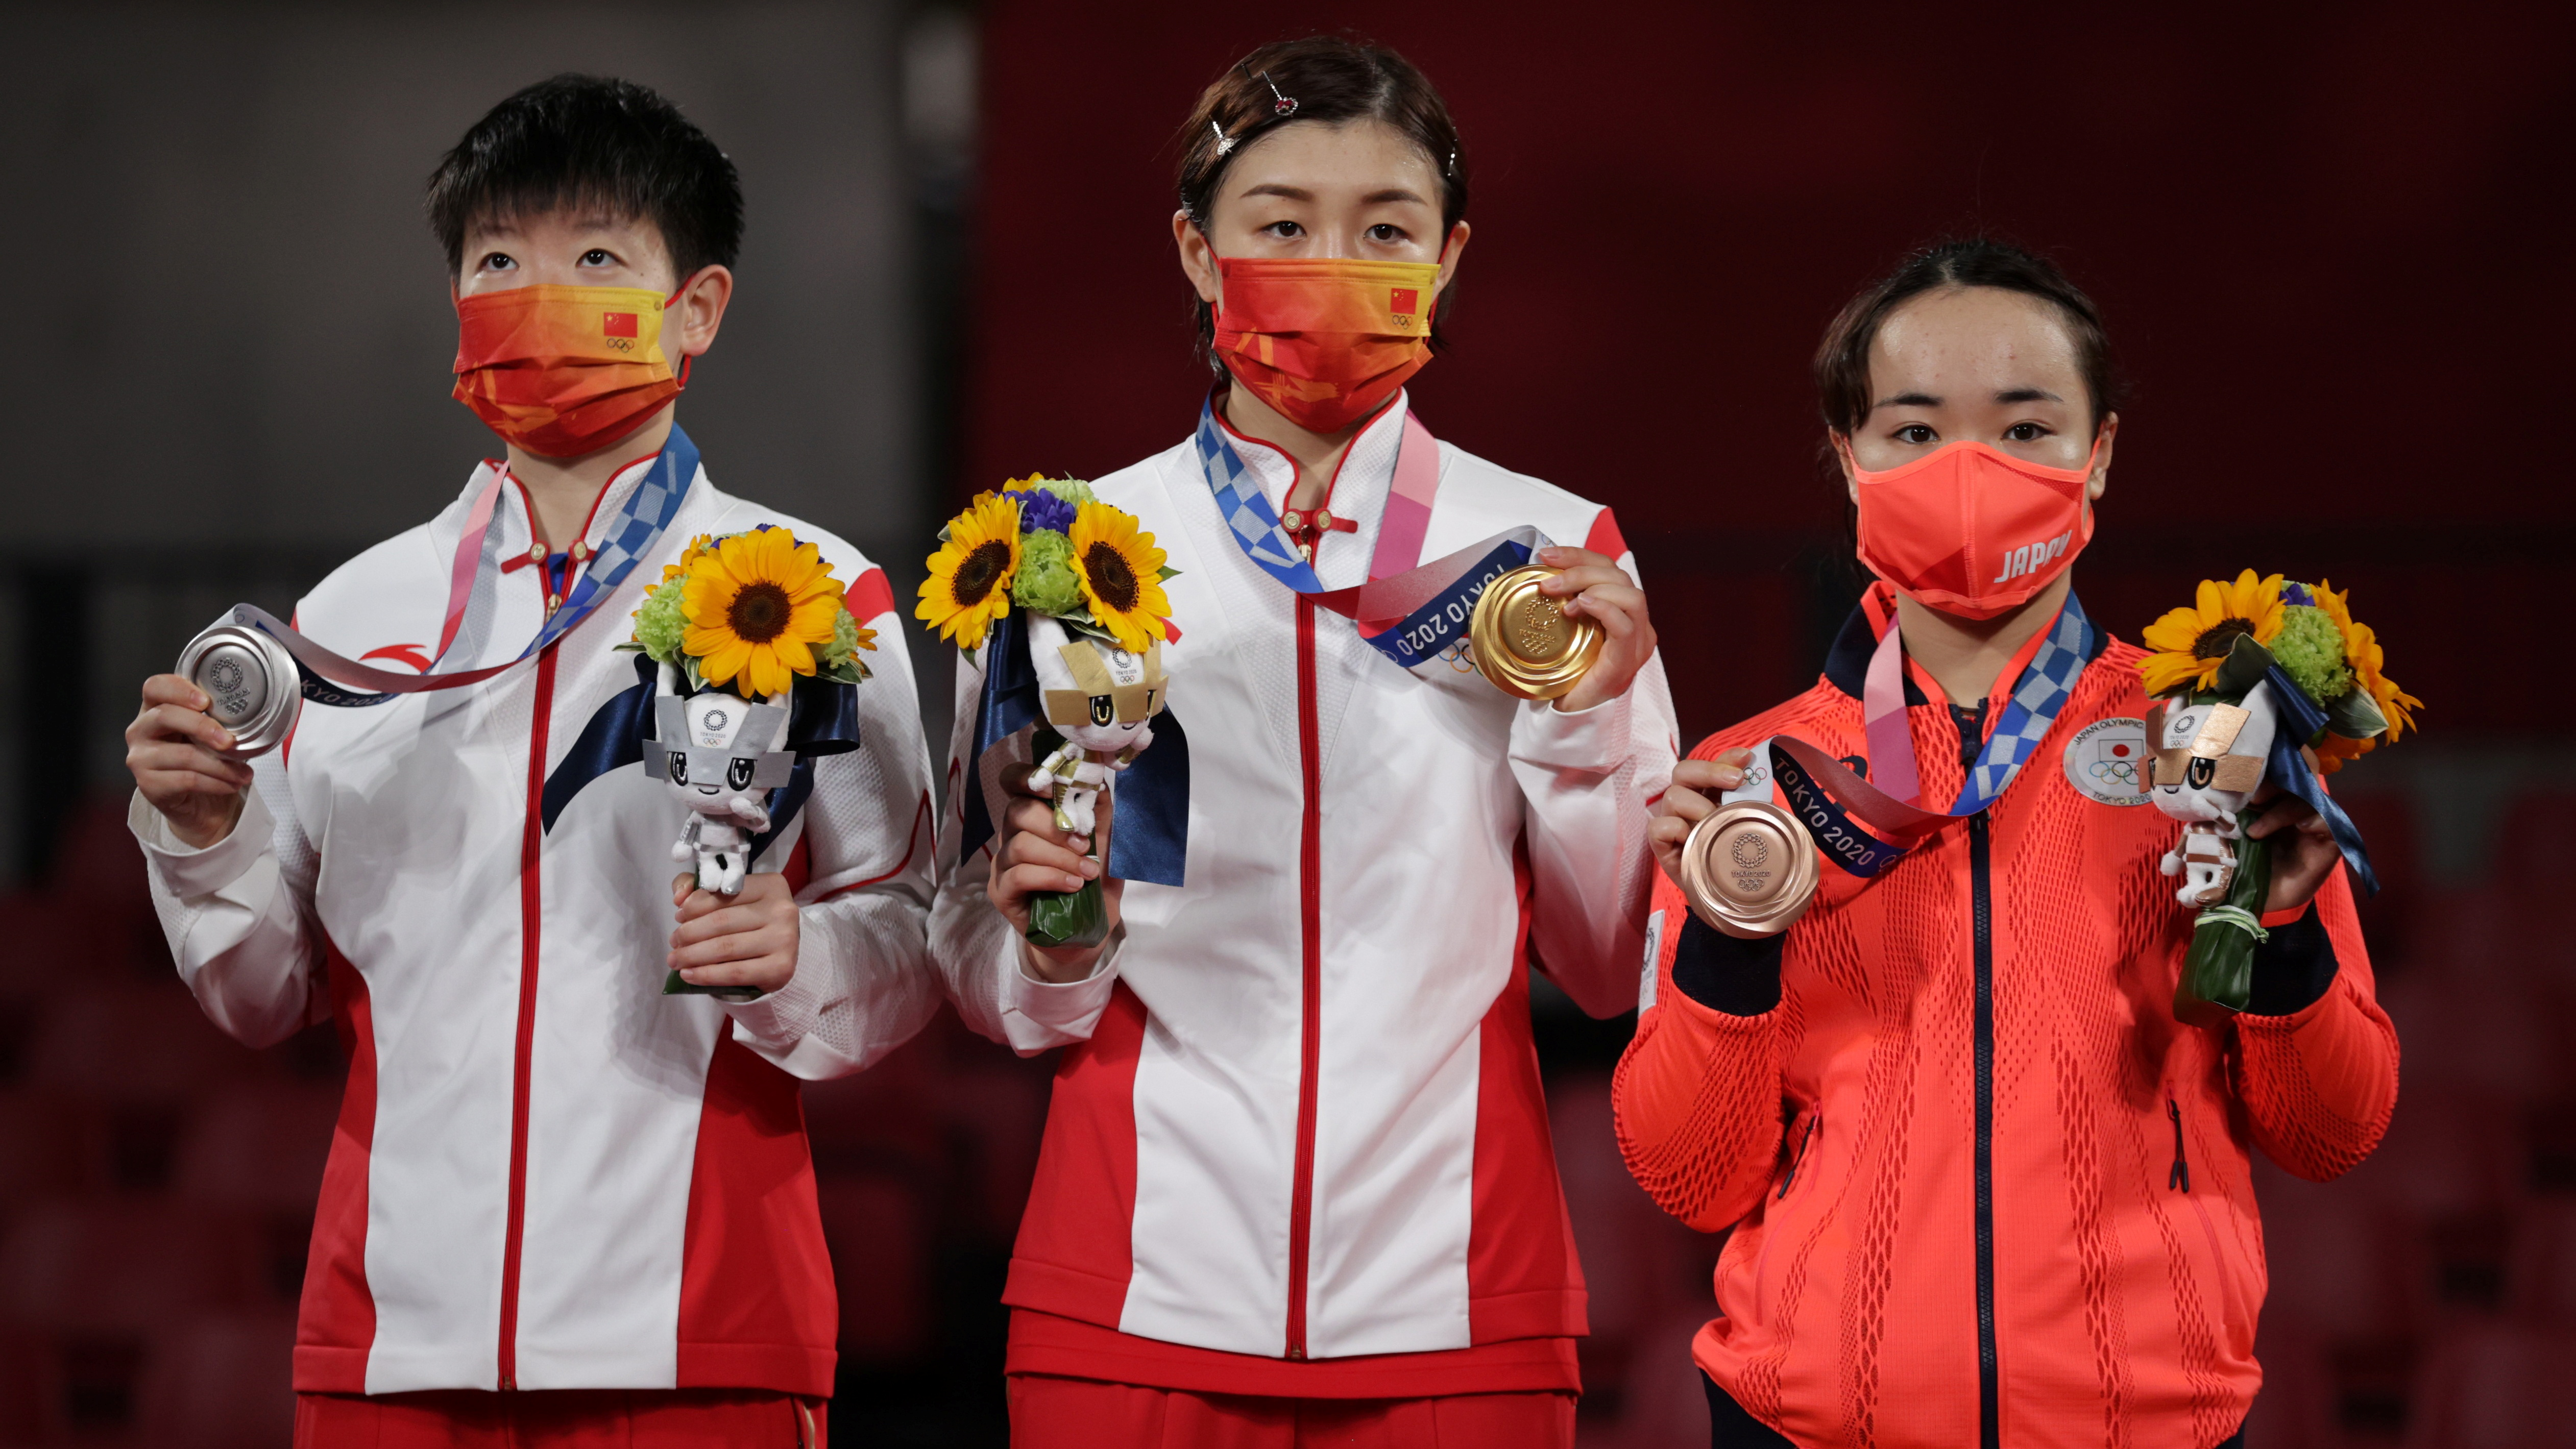 Tokyo 2020 Olympics - Table Tennis - Women's Singles - Medal Ceremony - Tokyo Metropolitan Gymnasium - Tokyo, Japan - July 29, 2021. Gold medalist Chen Meng of China, Silver medalist Sun Yingsha of China, and Bronze medalist Mima Ito of Japan, with their medals REUTERS/Hannah Mckay